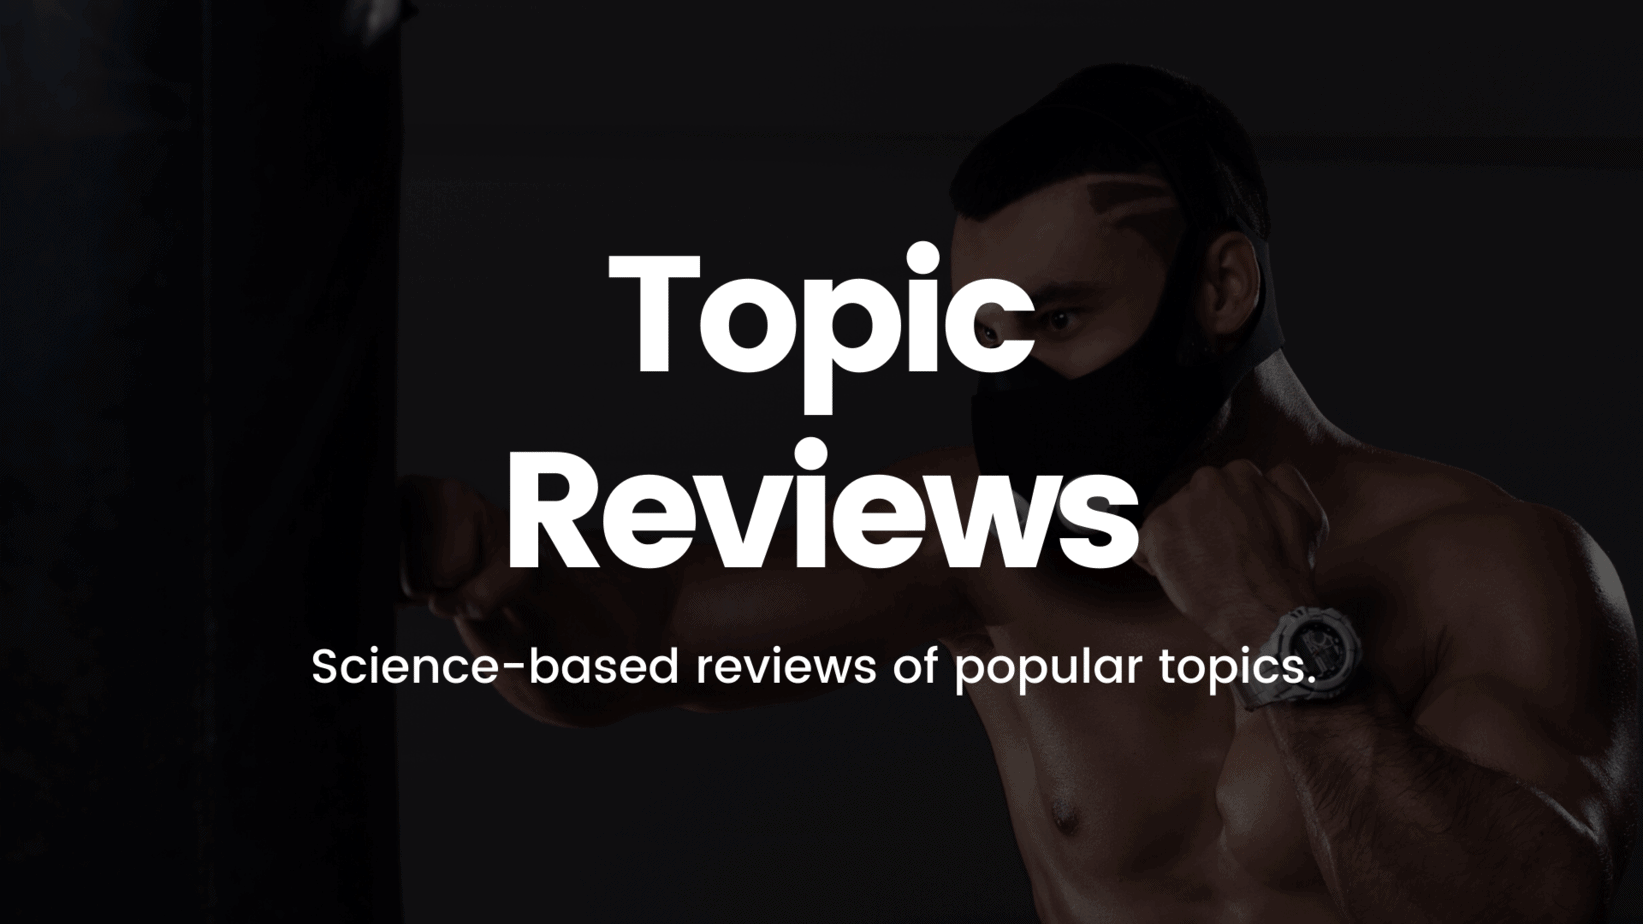 Topic Reviews